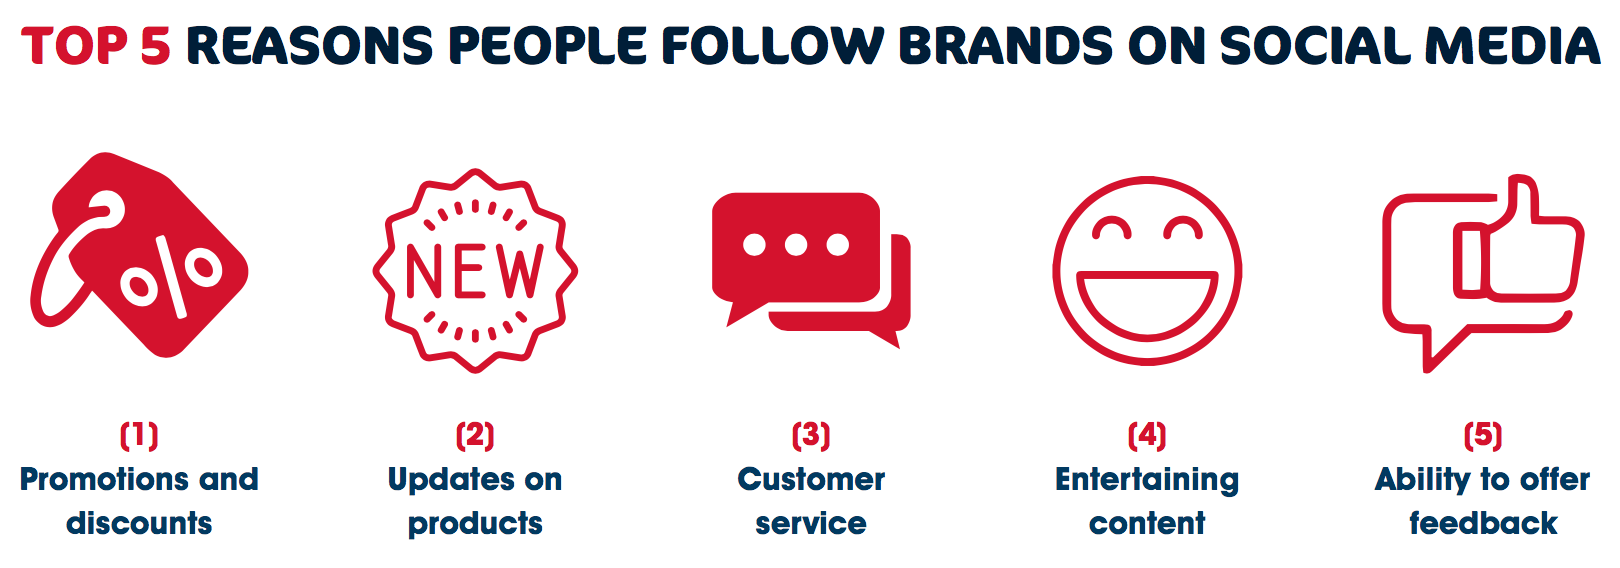 Top five reasons people follow brands on social media